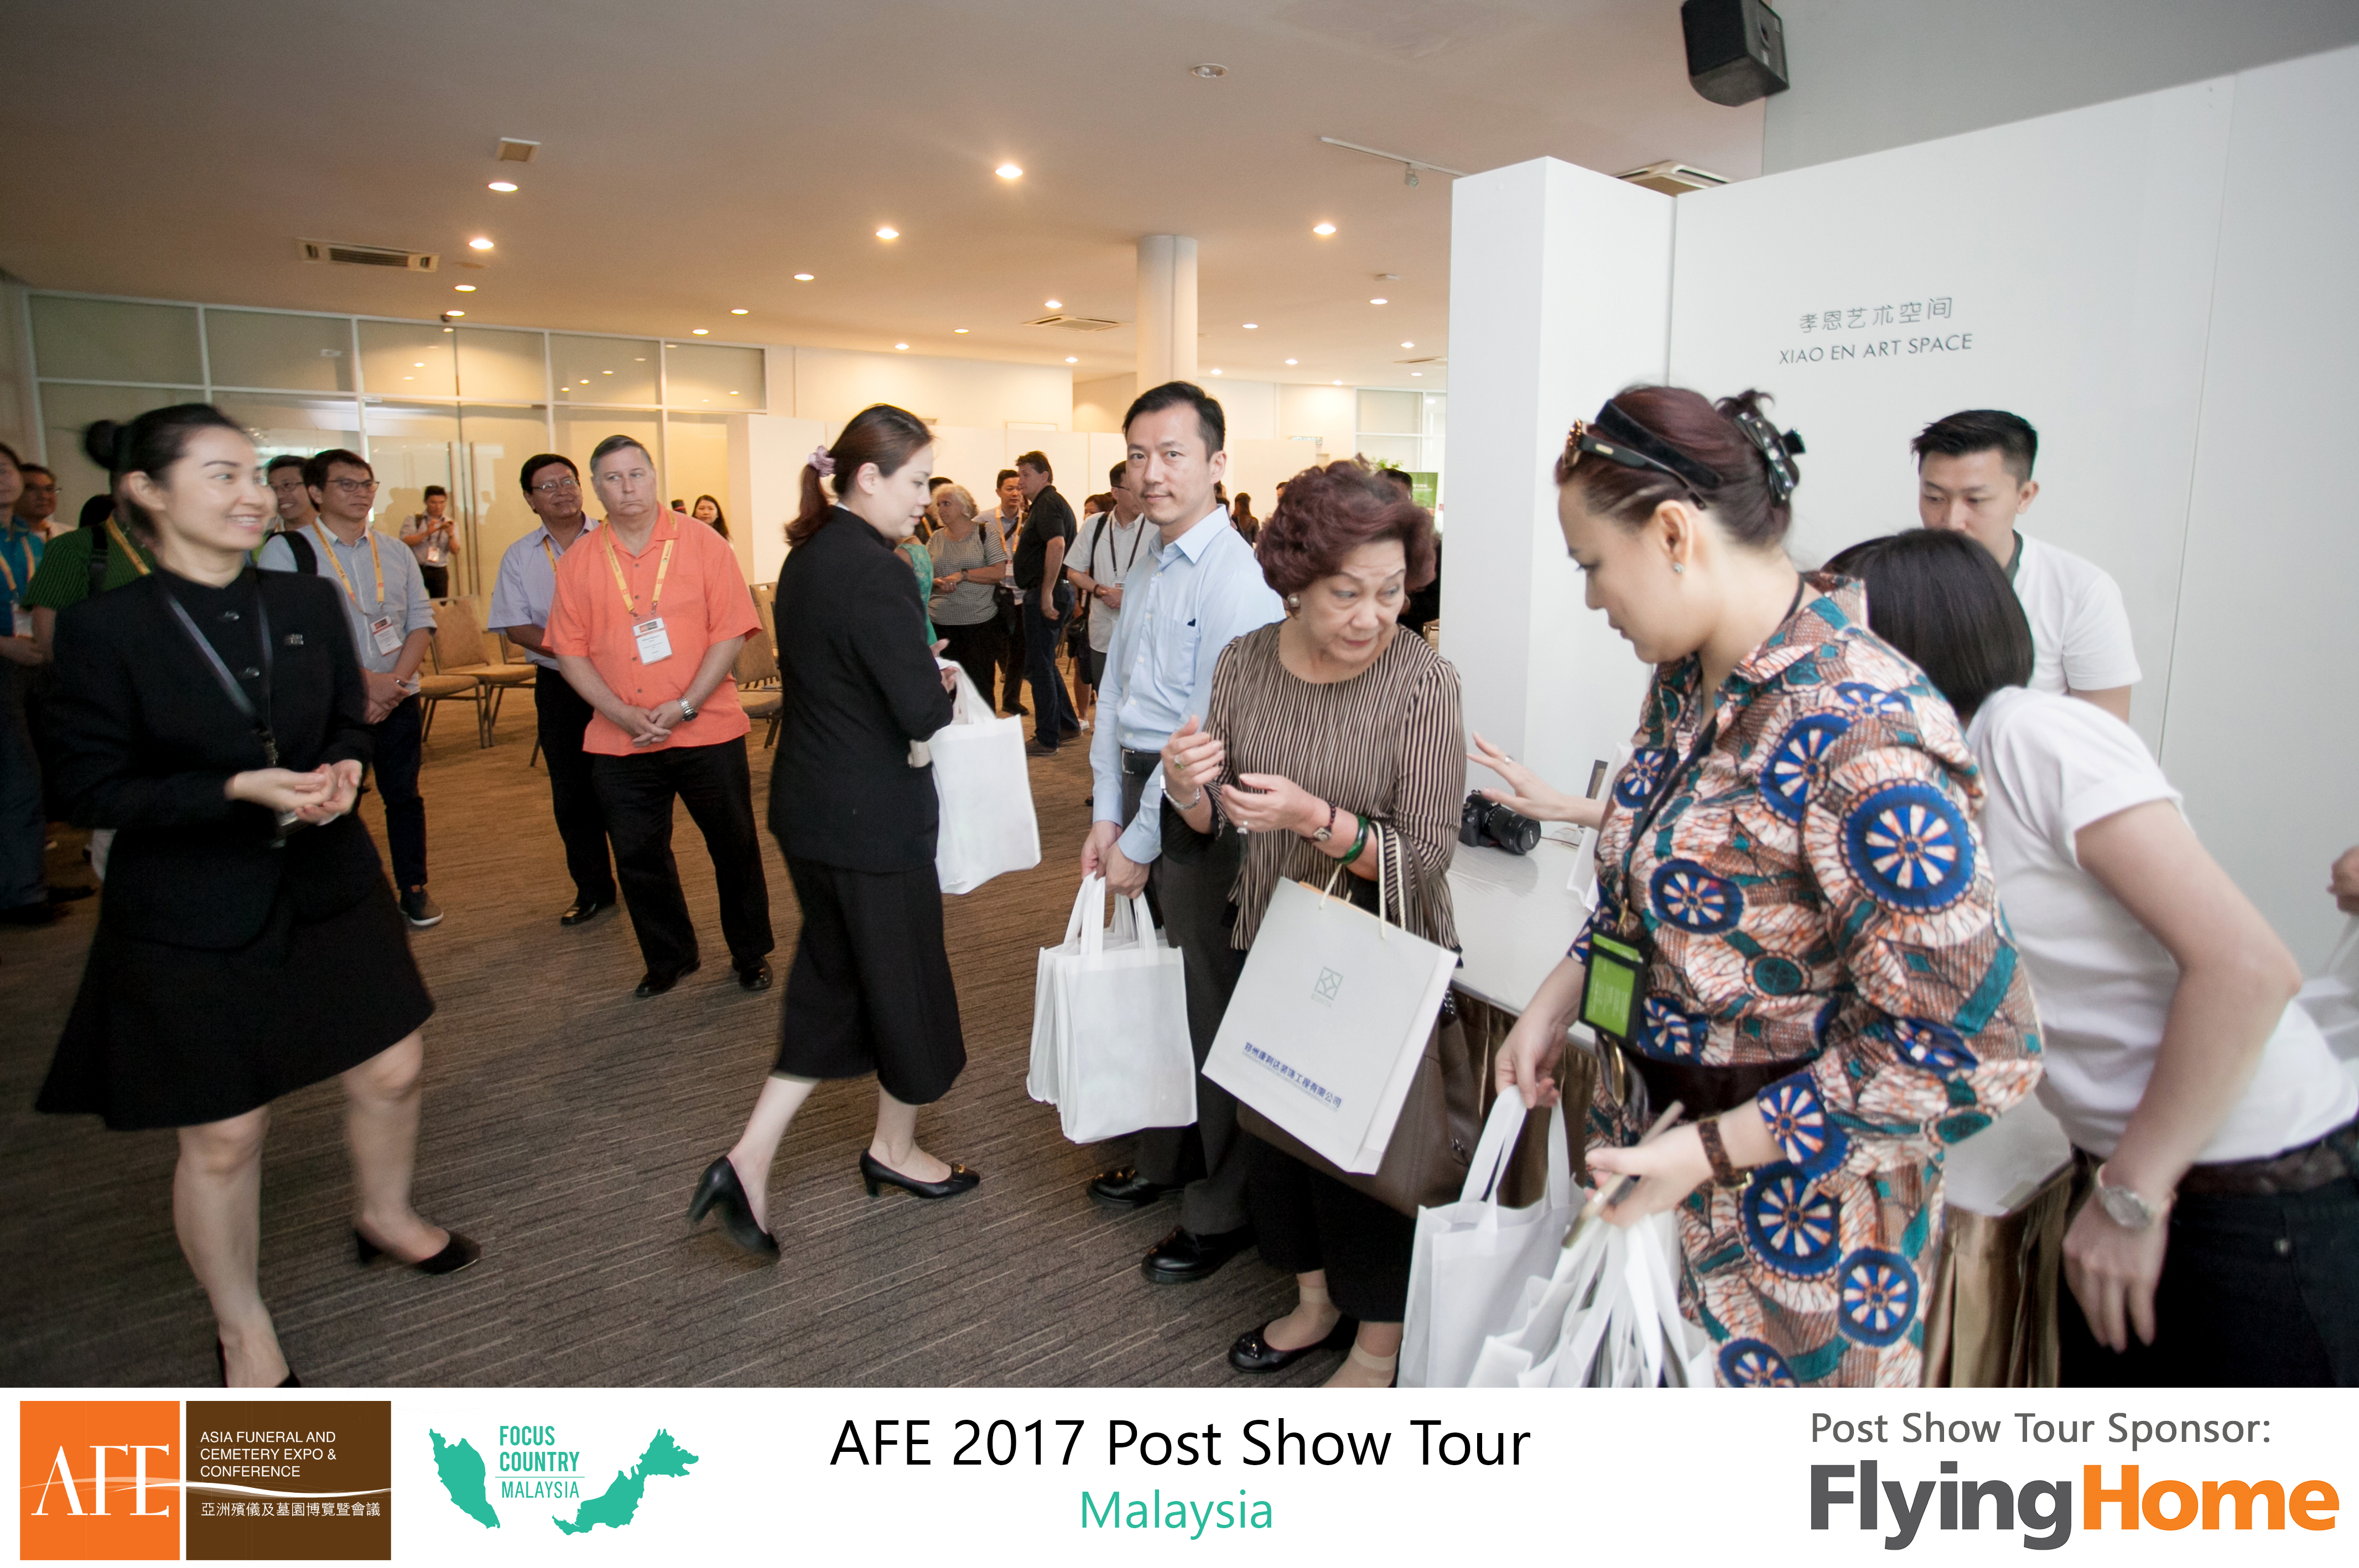 AFE Post Show Tour 2017 Day 3 -50